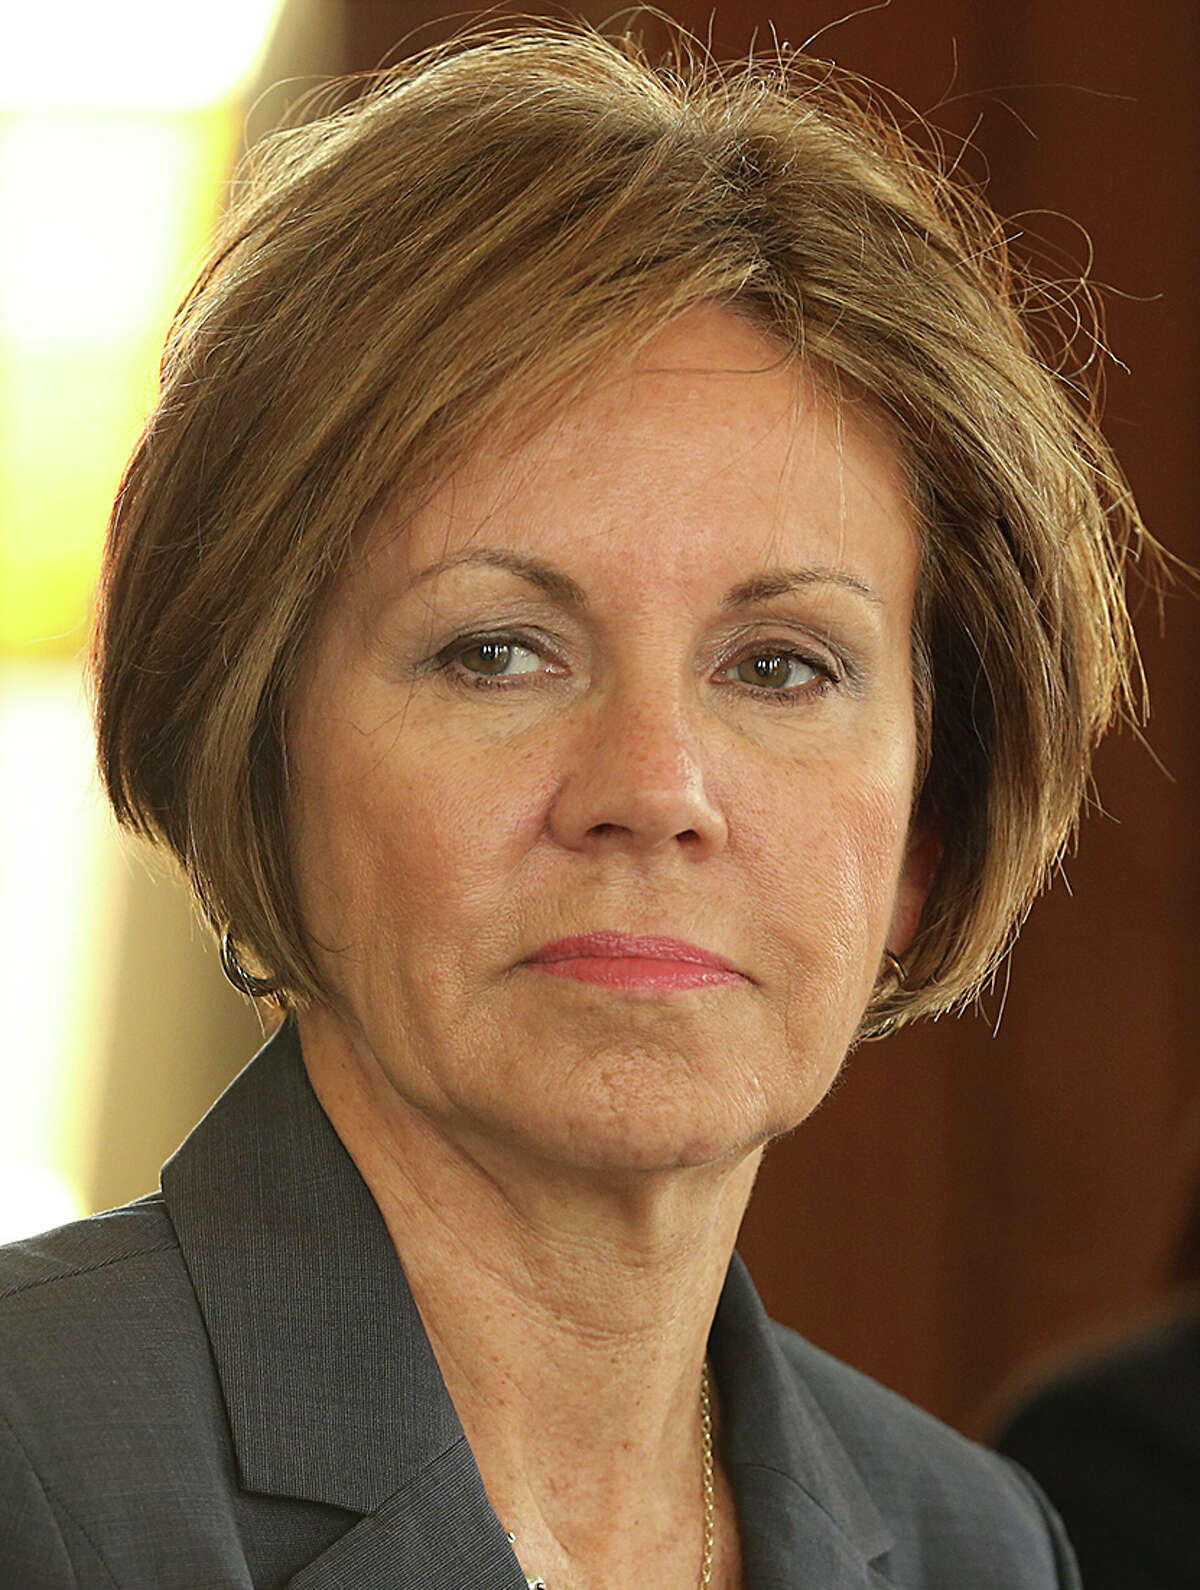 San Antonio City Manager Sheryl Sculley has proposed a wage increase for the lowest-paid city employees.